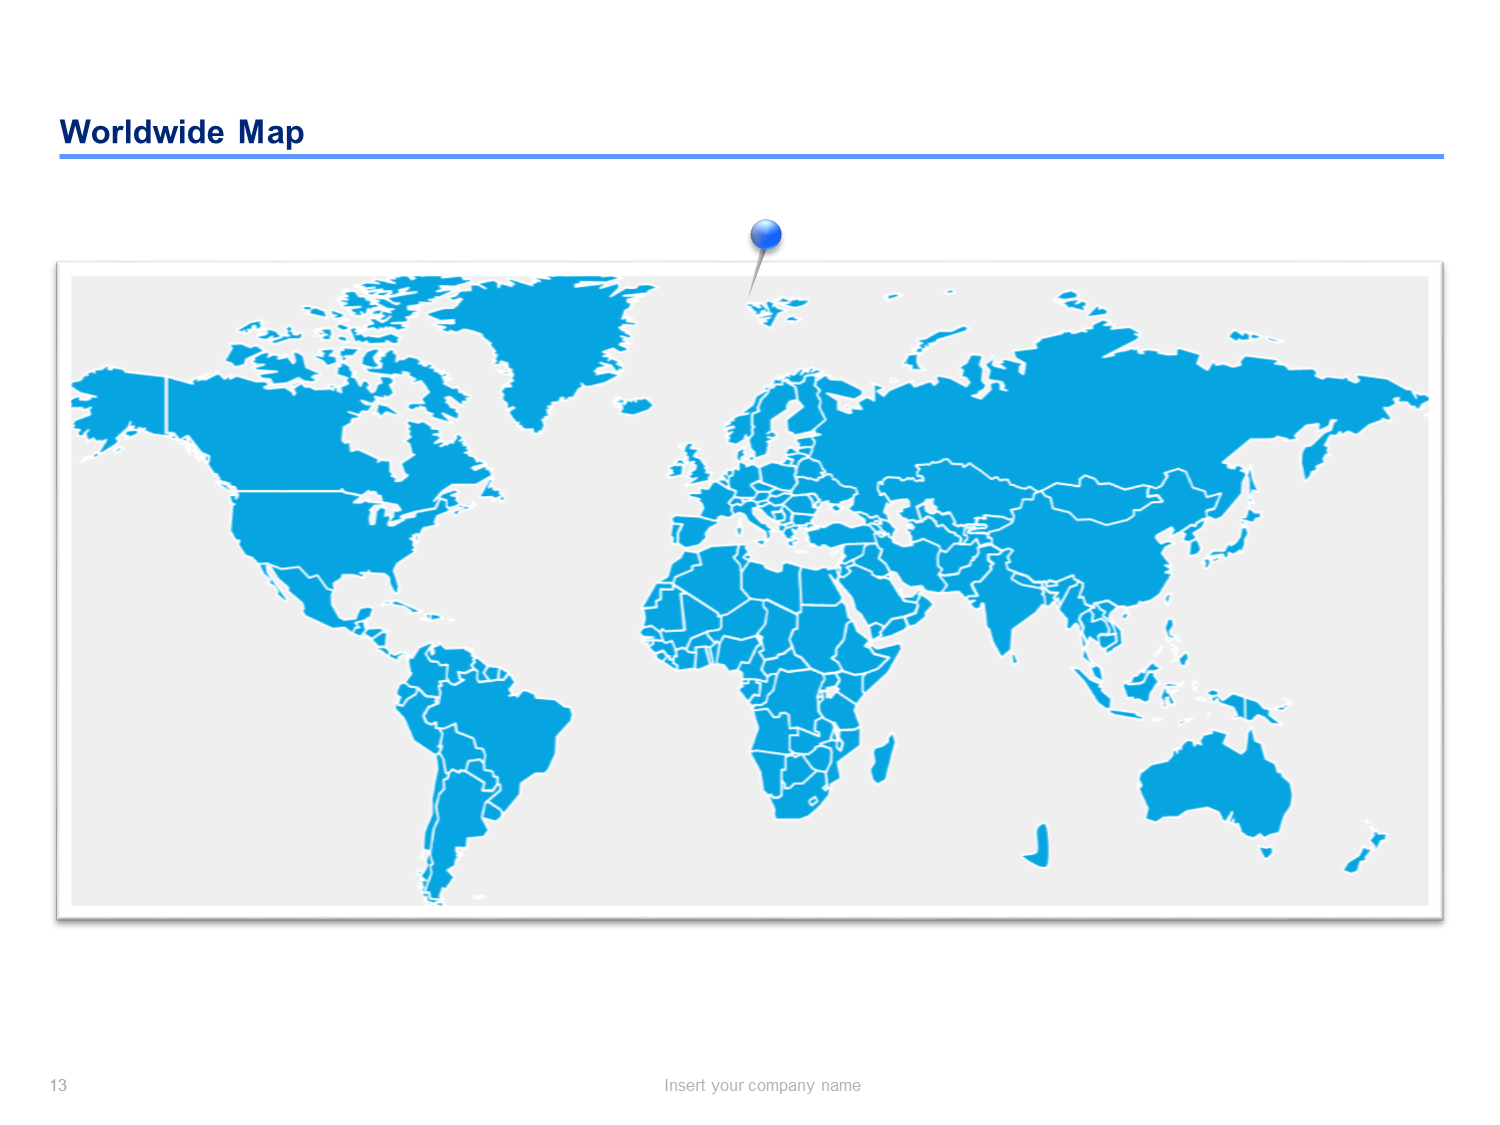 World Map Templates | Editable World Maps for Powerpoint ... on